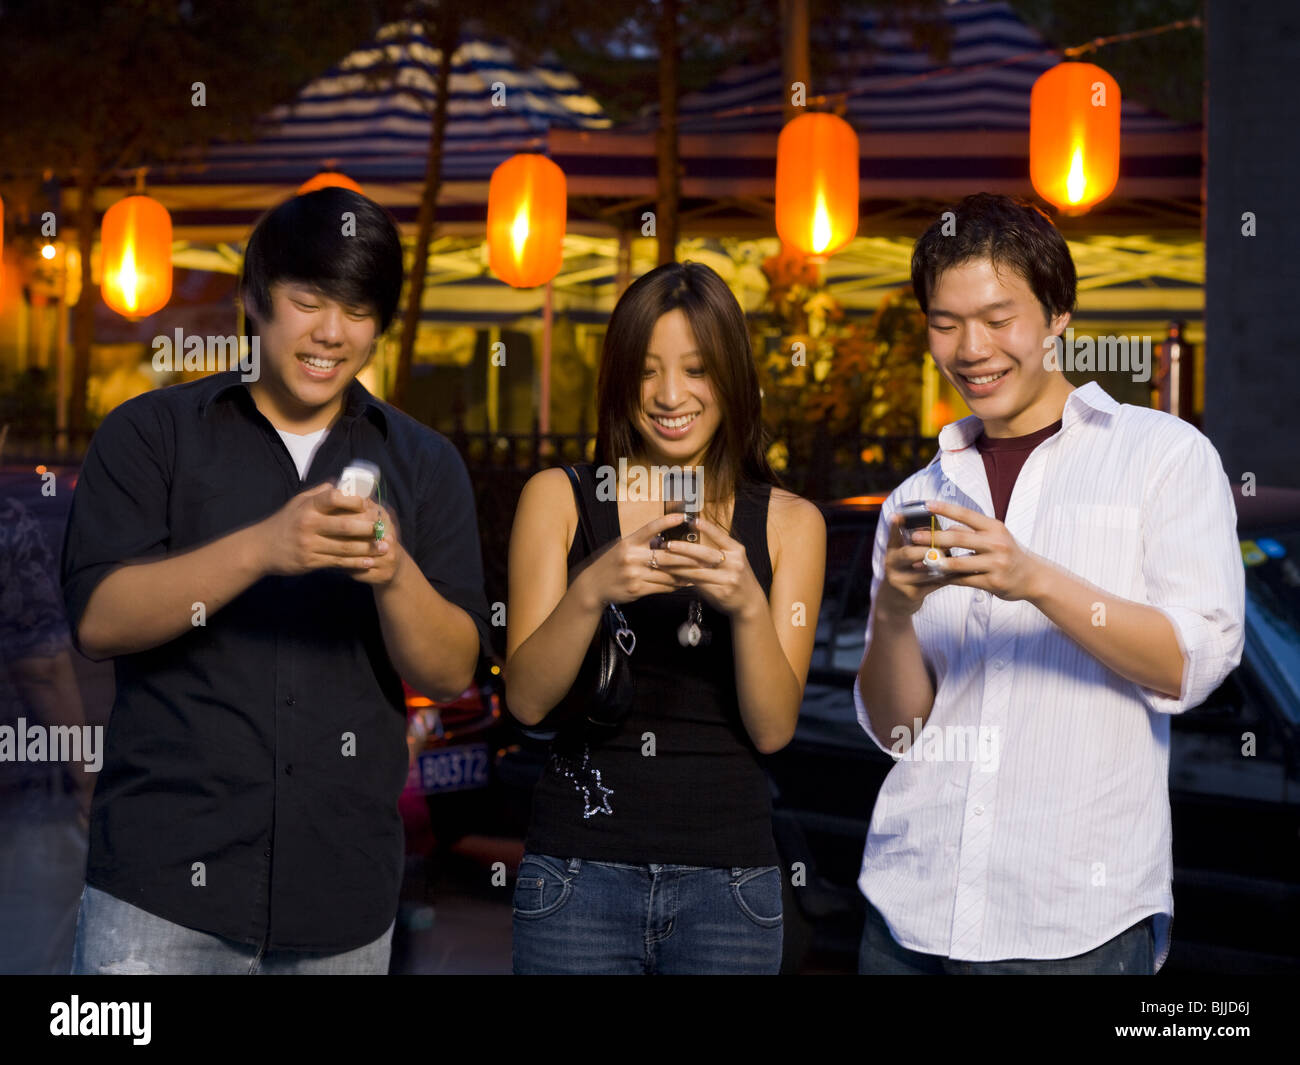 Three people with cell phones outdoors at night smiling - Stock Image